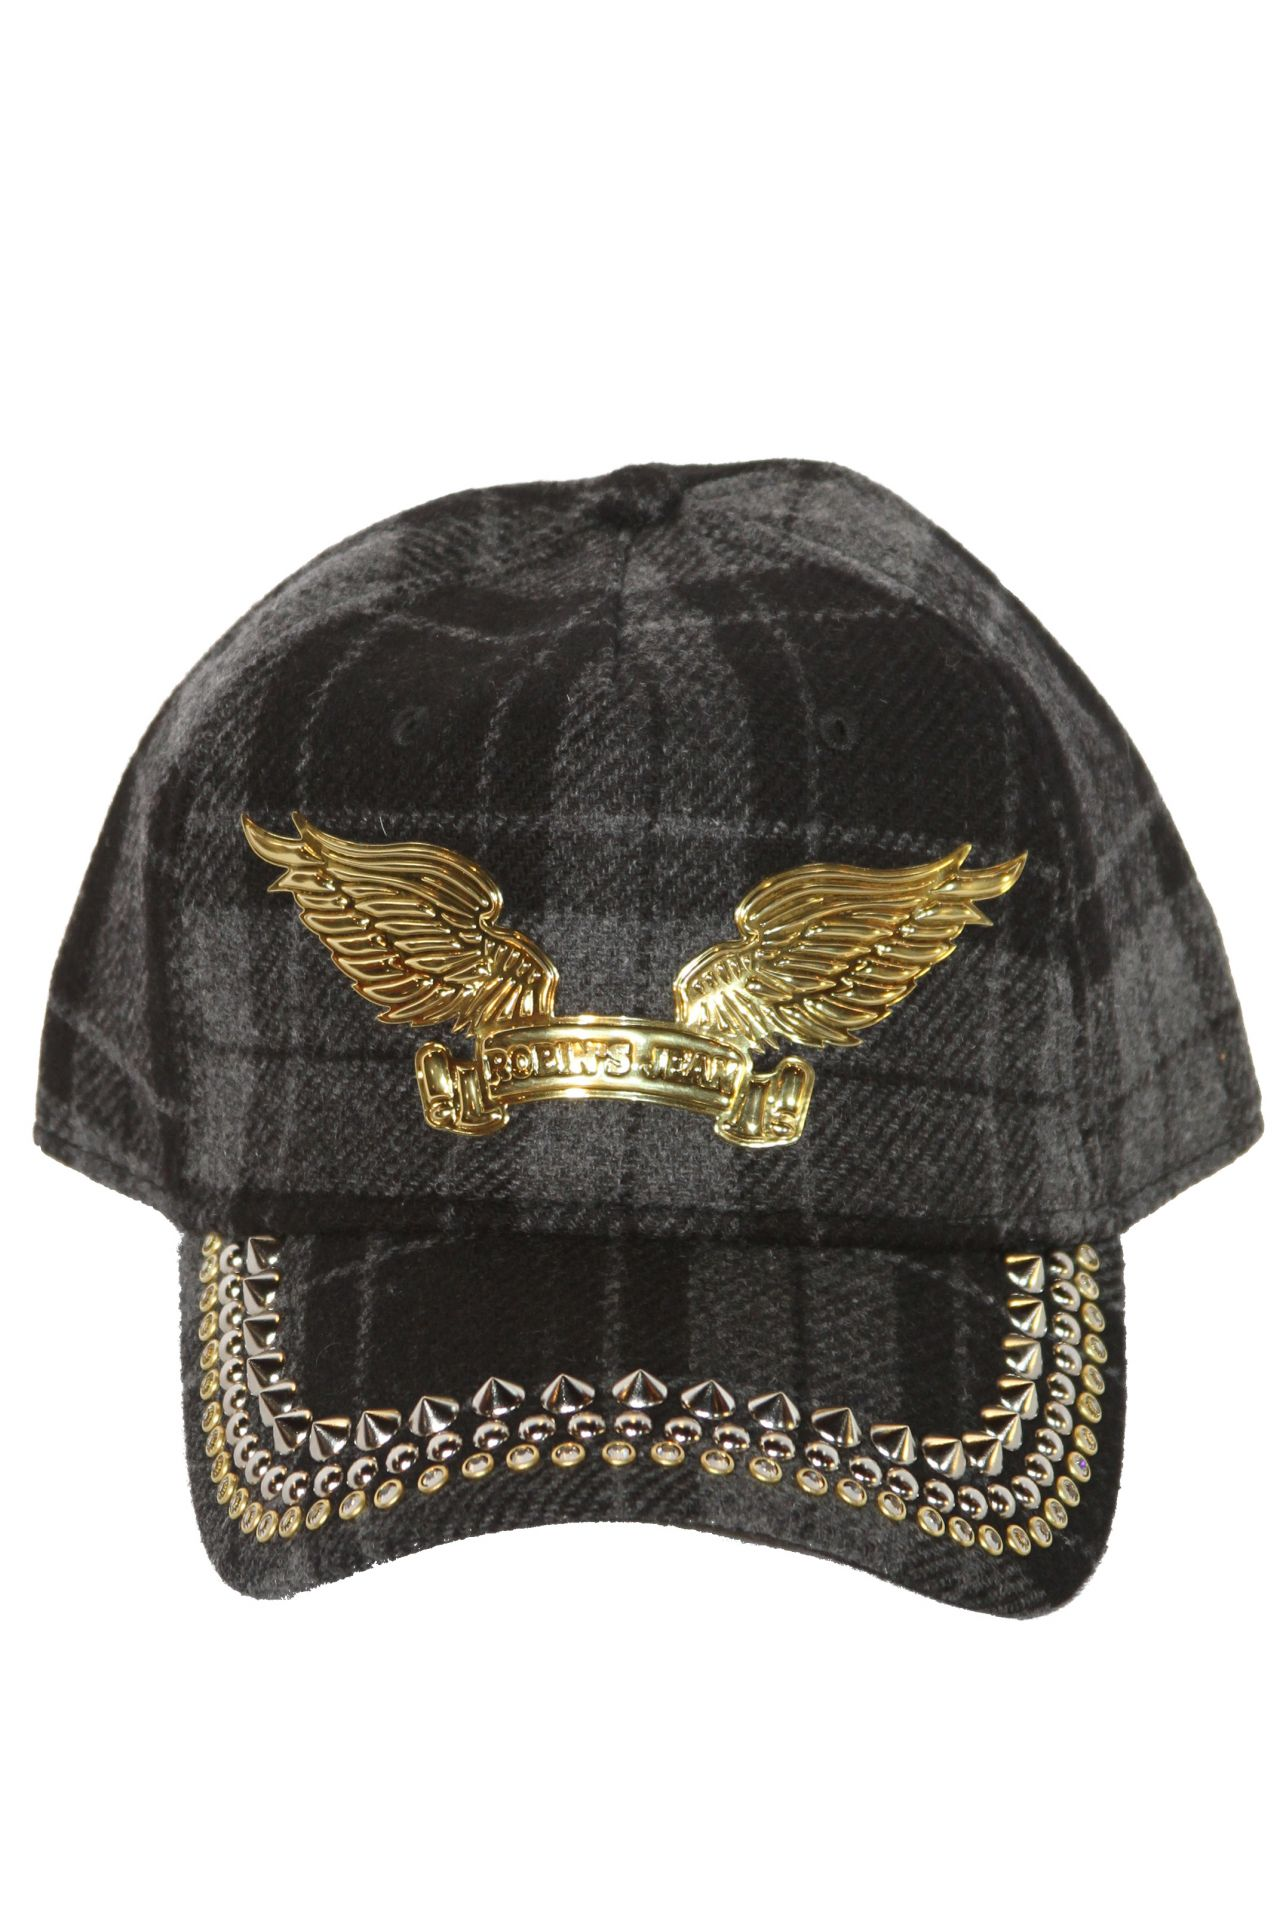 Charcoal cap with Clear SW and Nickle spikes with signature Robin's Wings